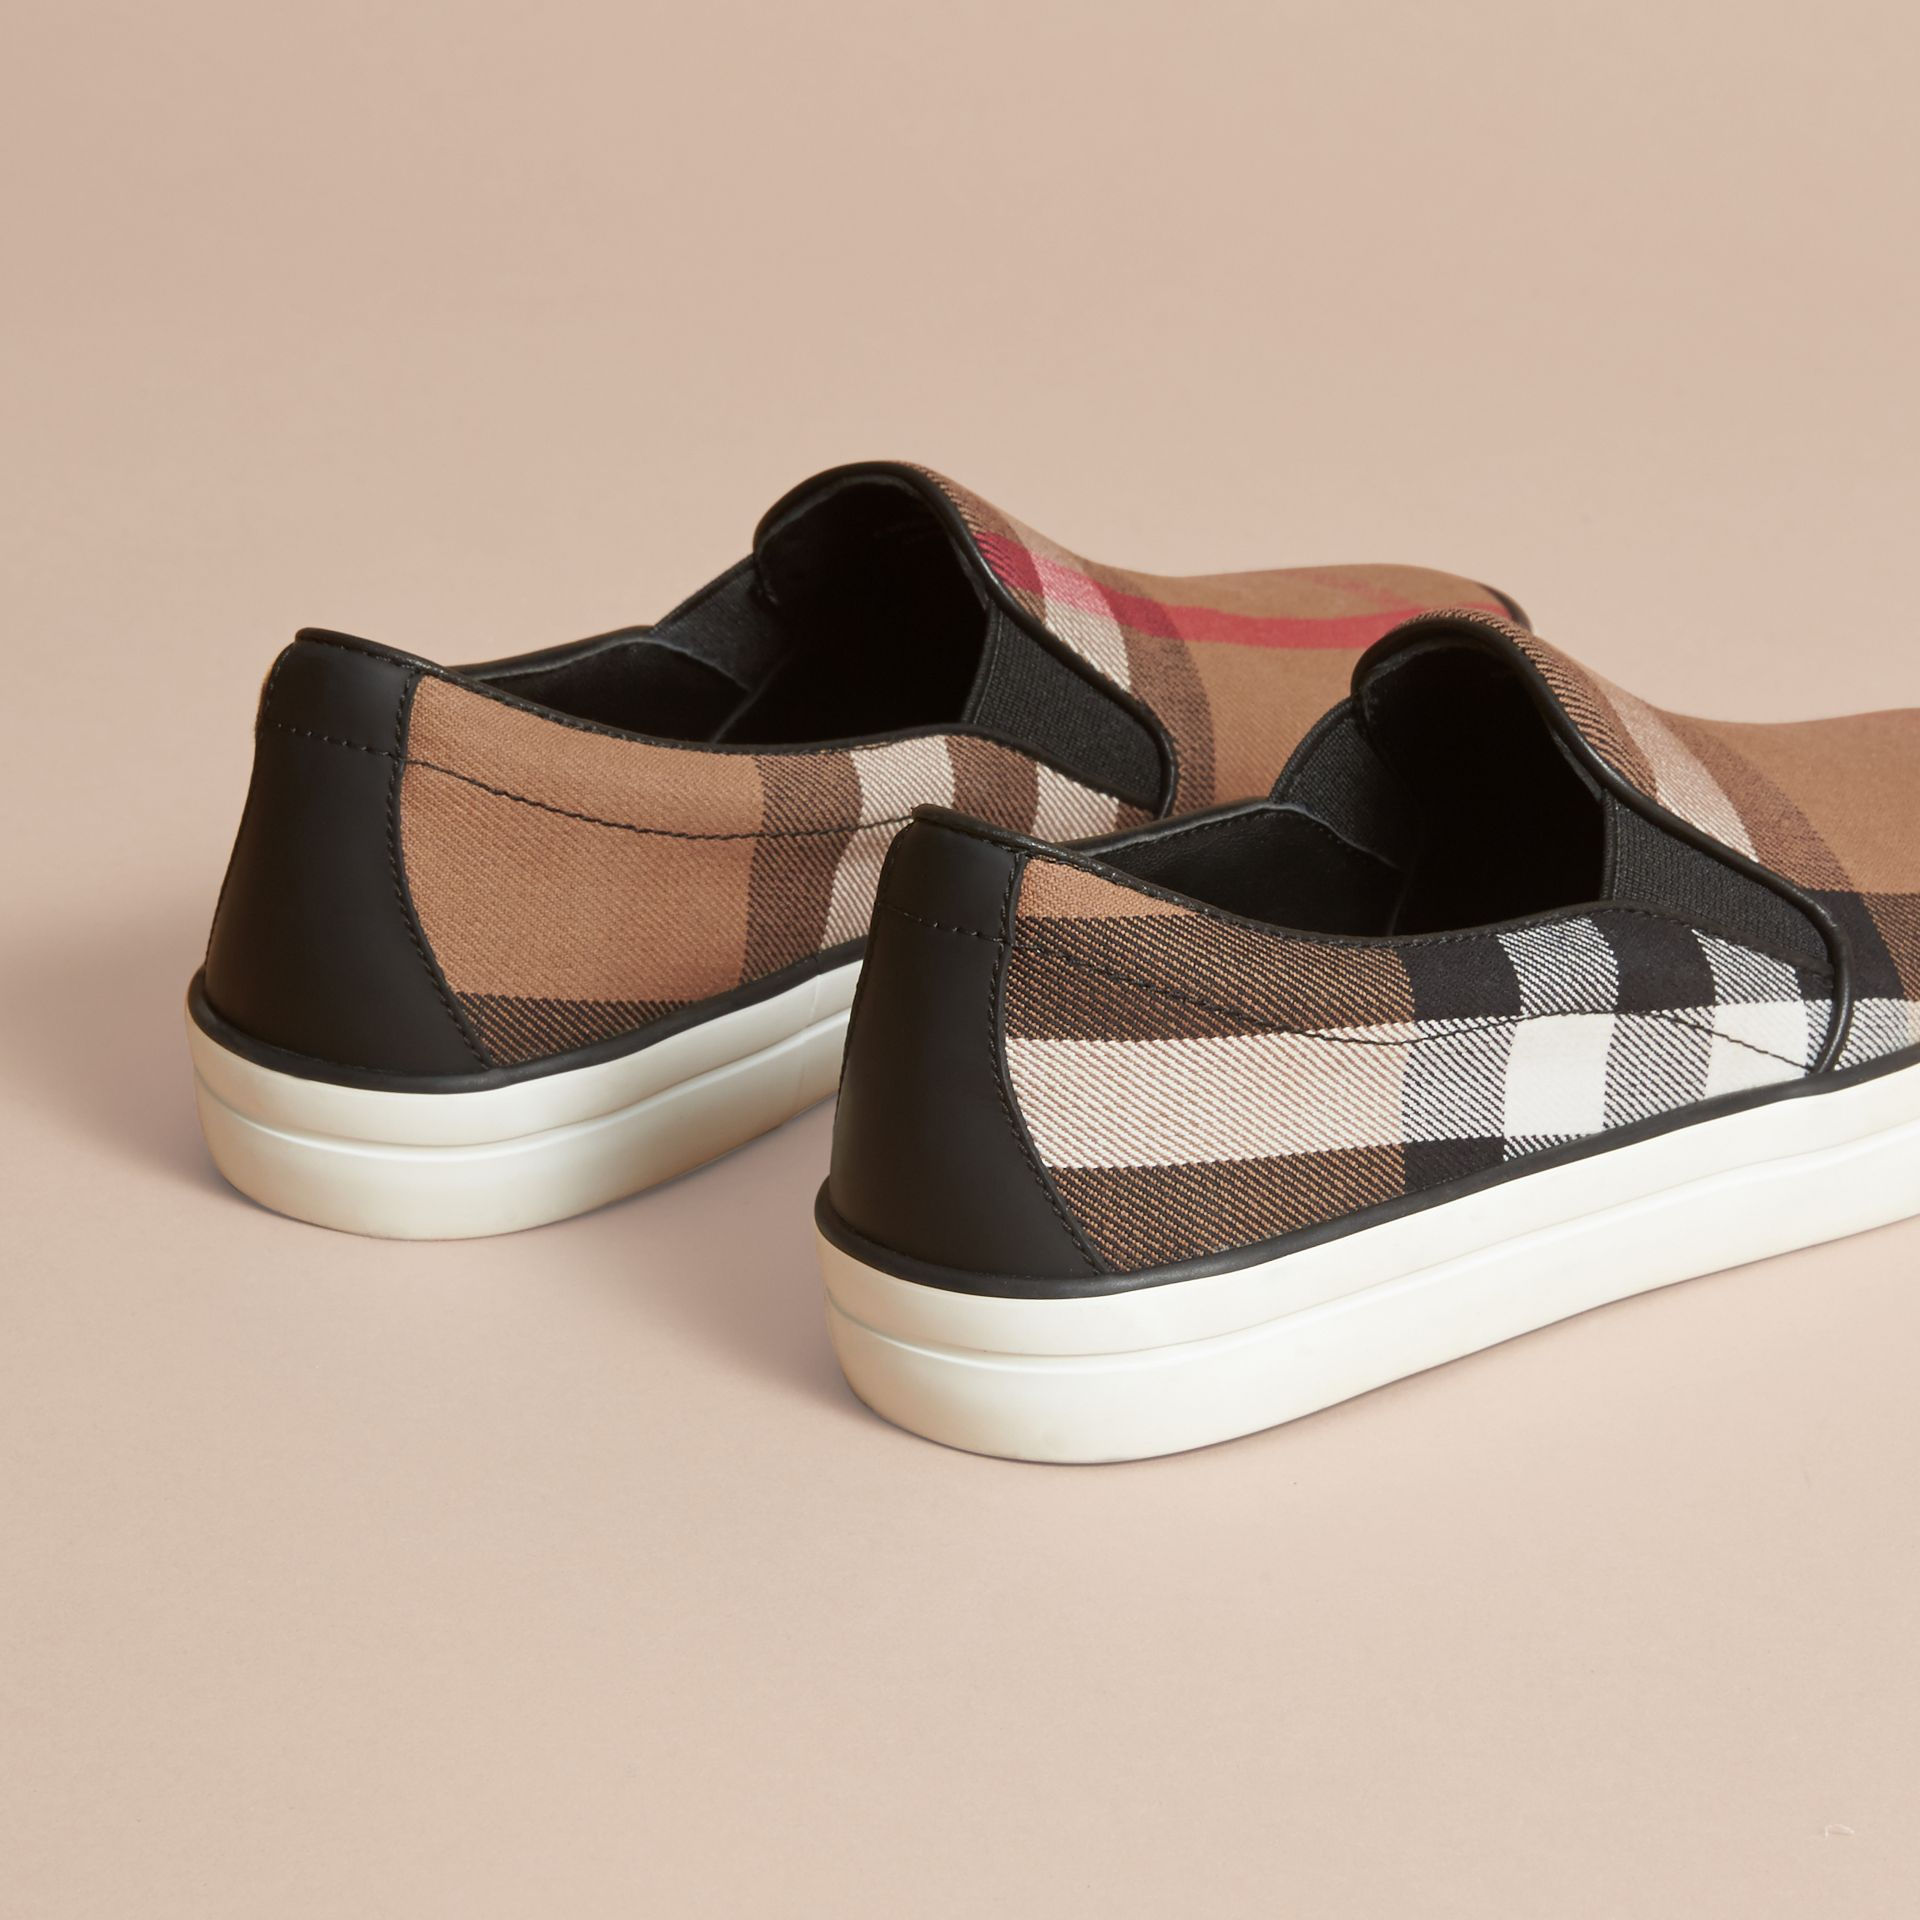 House Check and Leather Slip-on Sneakers in Classic - Women | Burberry United States - gallery image 3